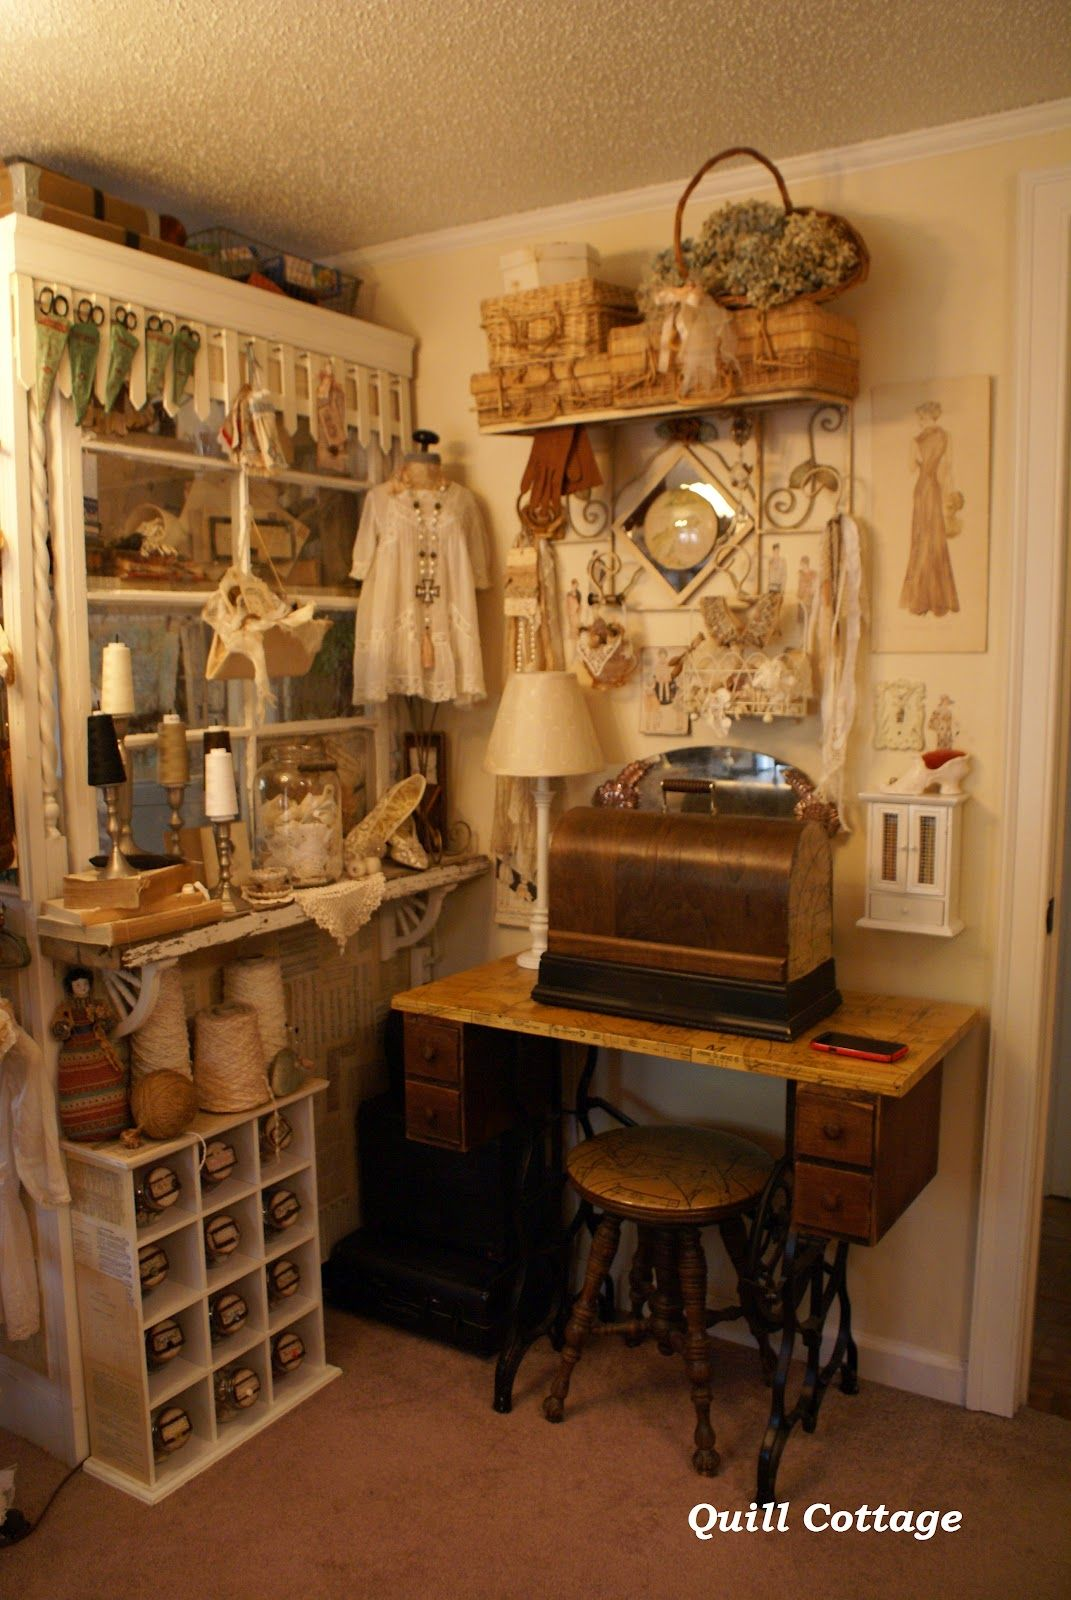 Quilting Sewing Room Design Ideas